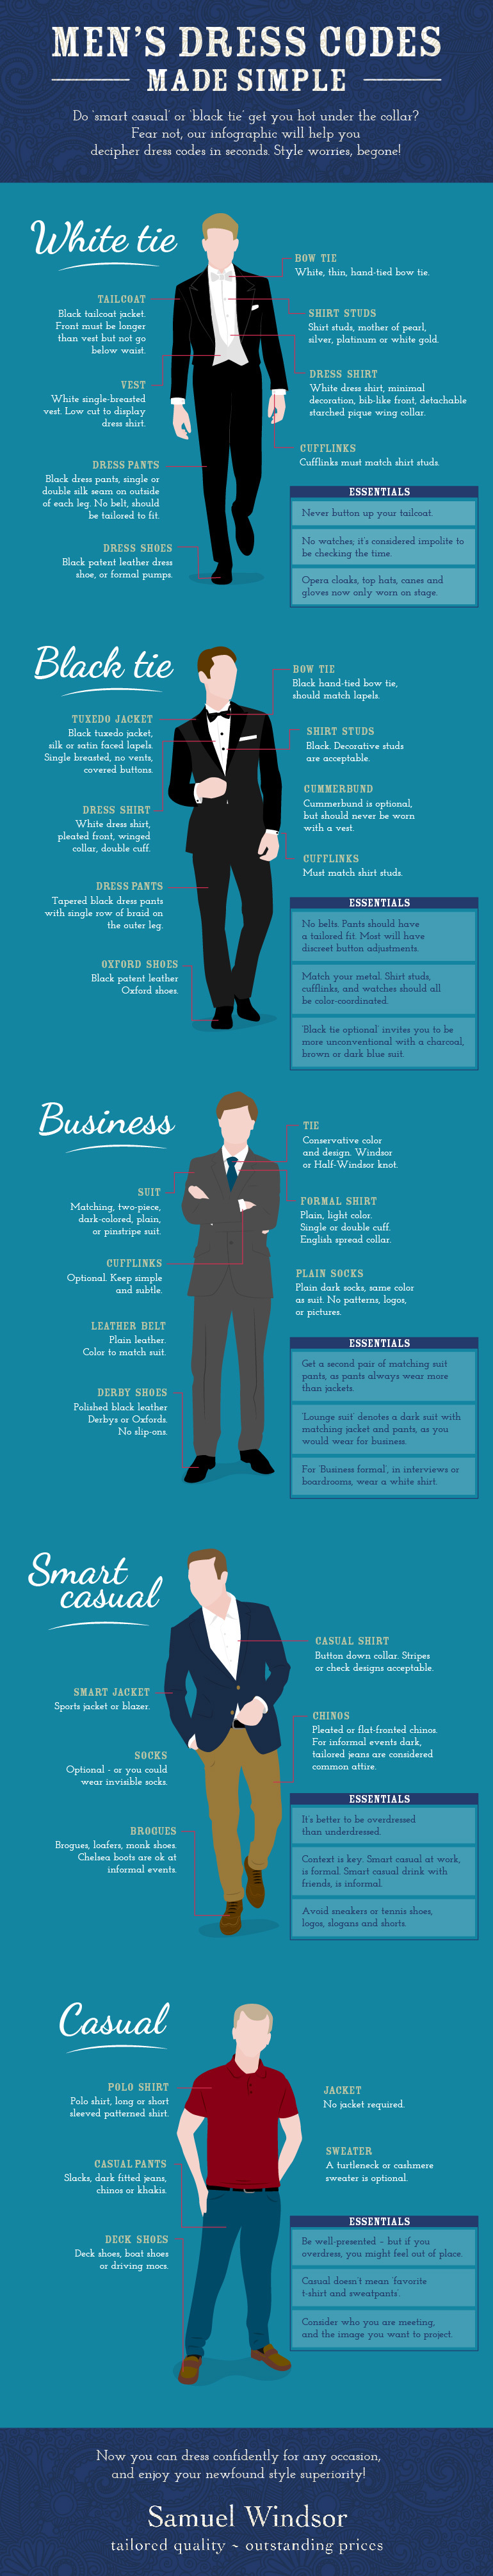 What the Well-Dressed Man is Wearing: Codes of Men's Attire - Infographic